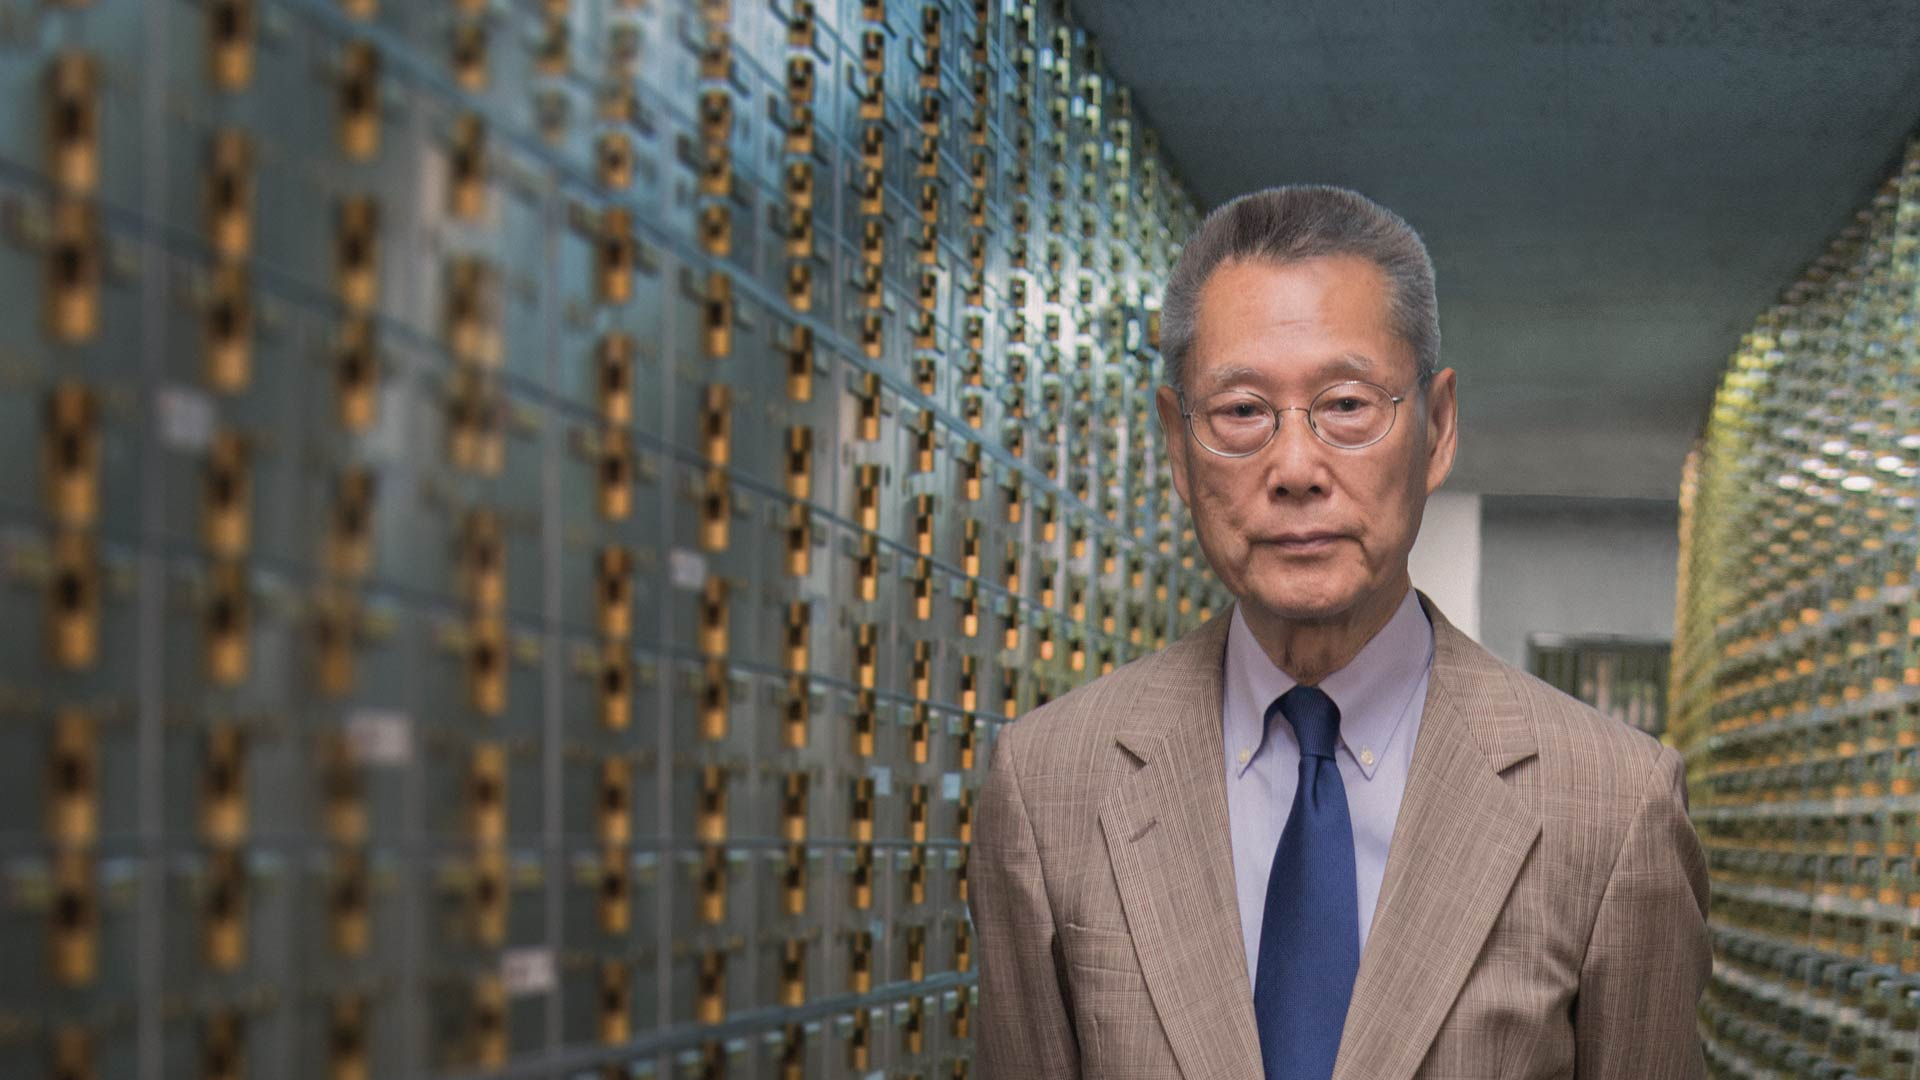 Program tells the little-known story of the only U.S. bank prosecuted after the 2008 financial crisis, and chronicles the Chinese immigrant Sung family's fight to clear their names.